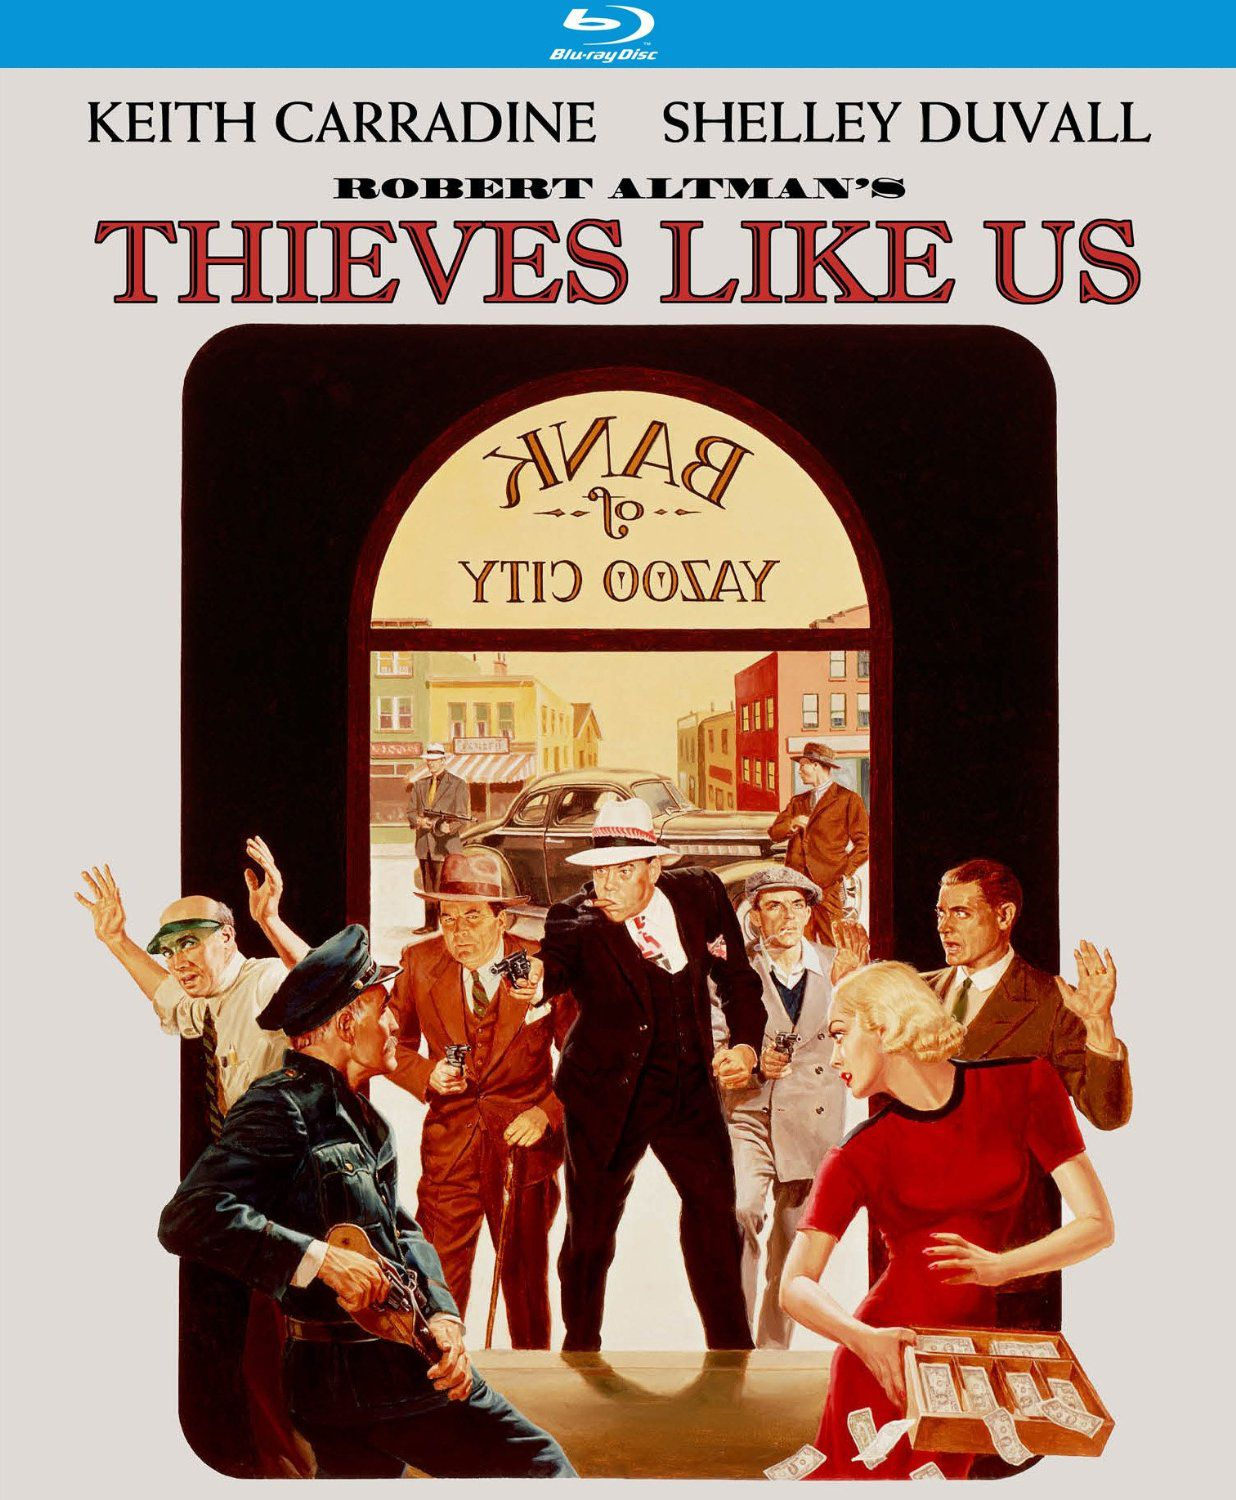 Thieves Like Us